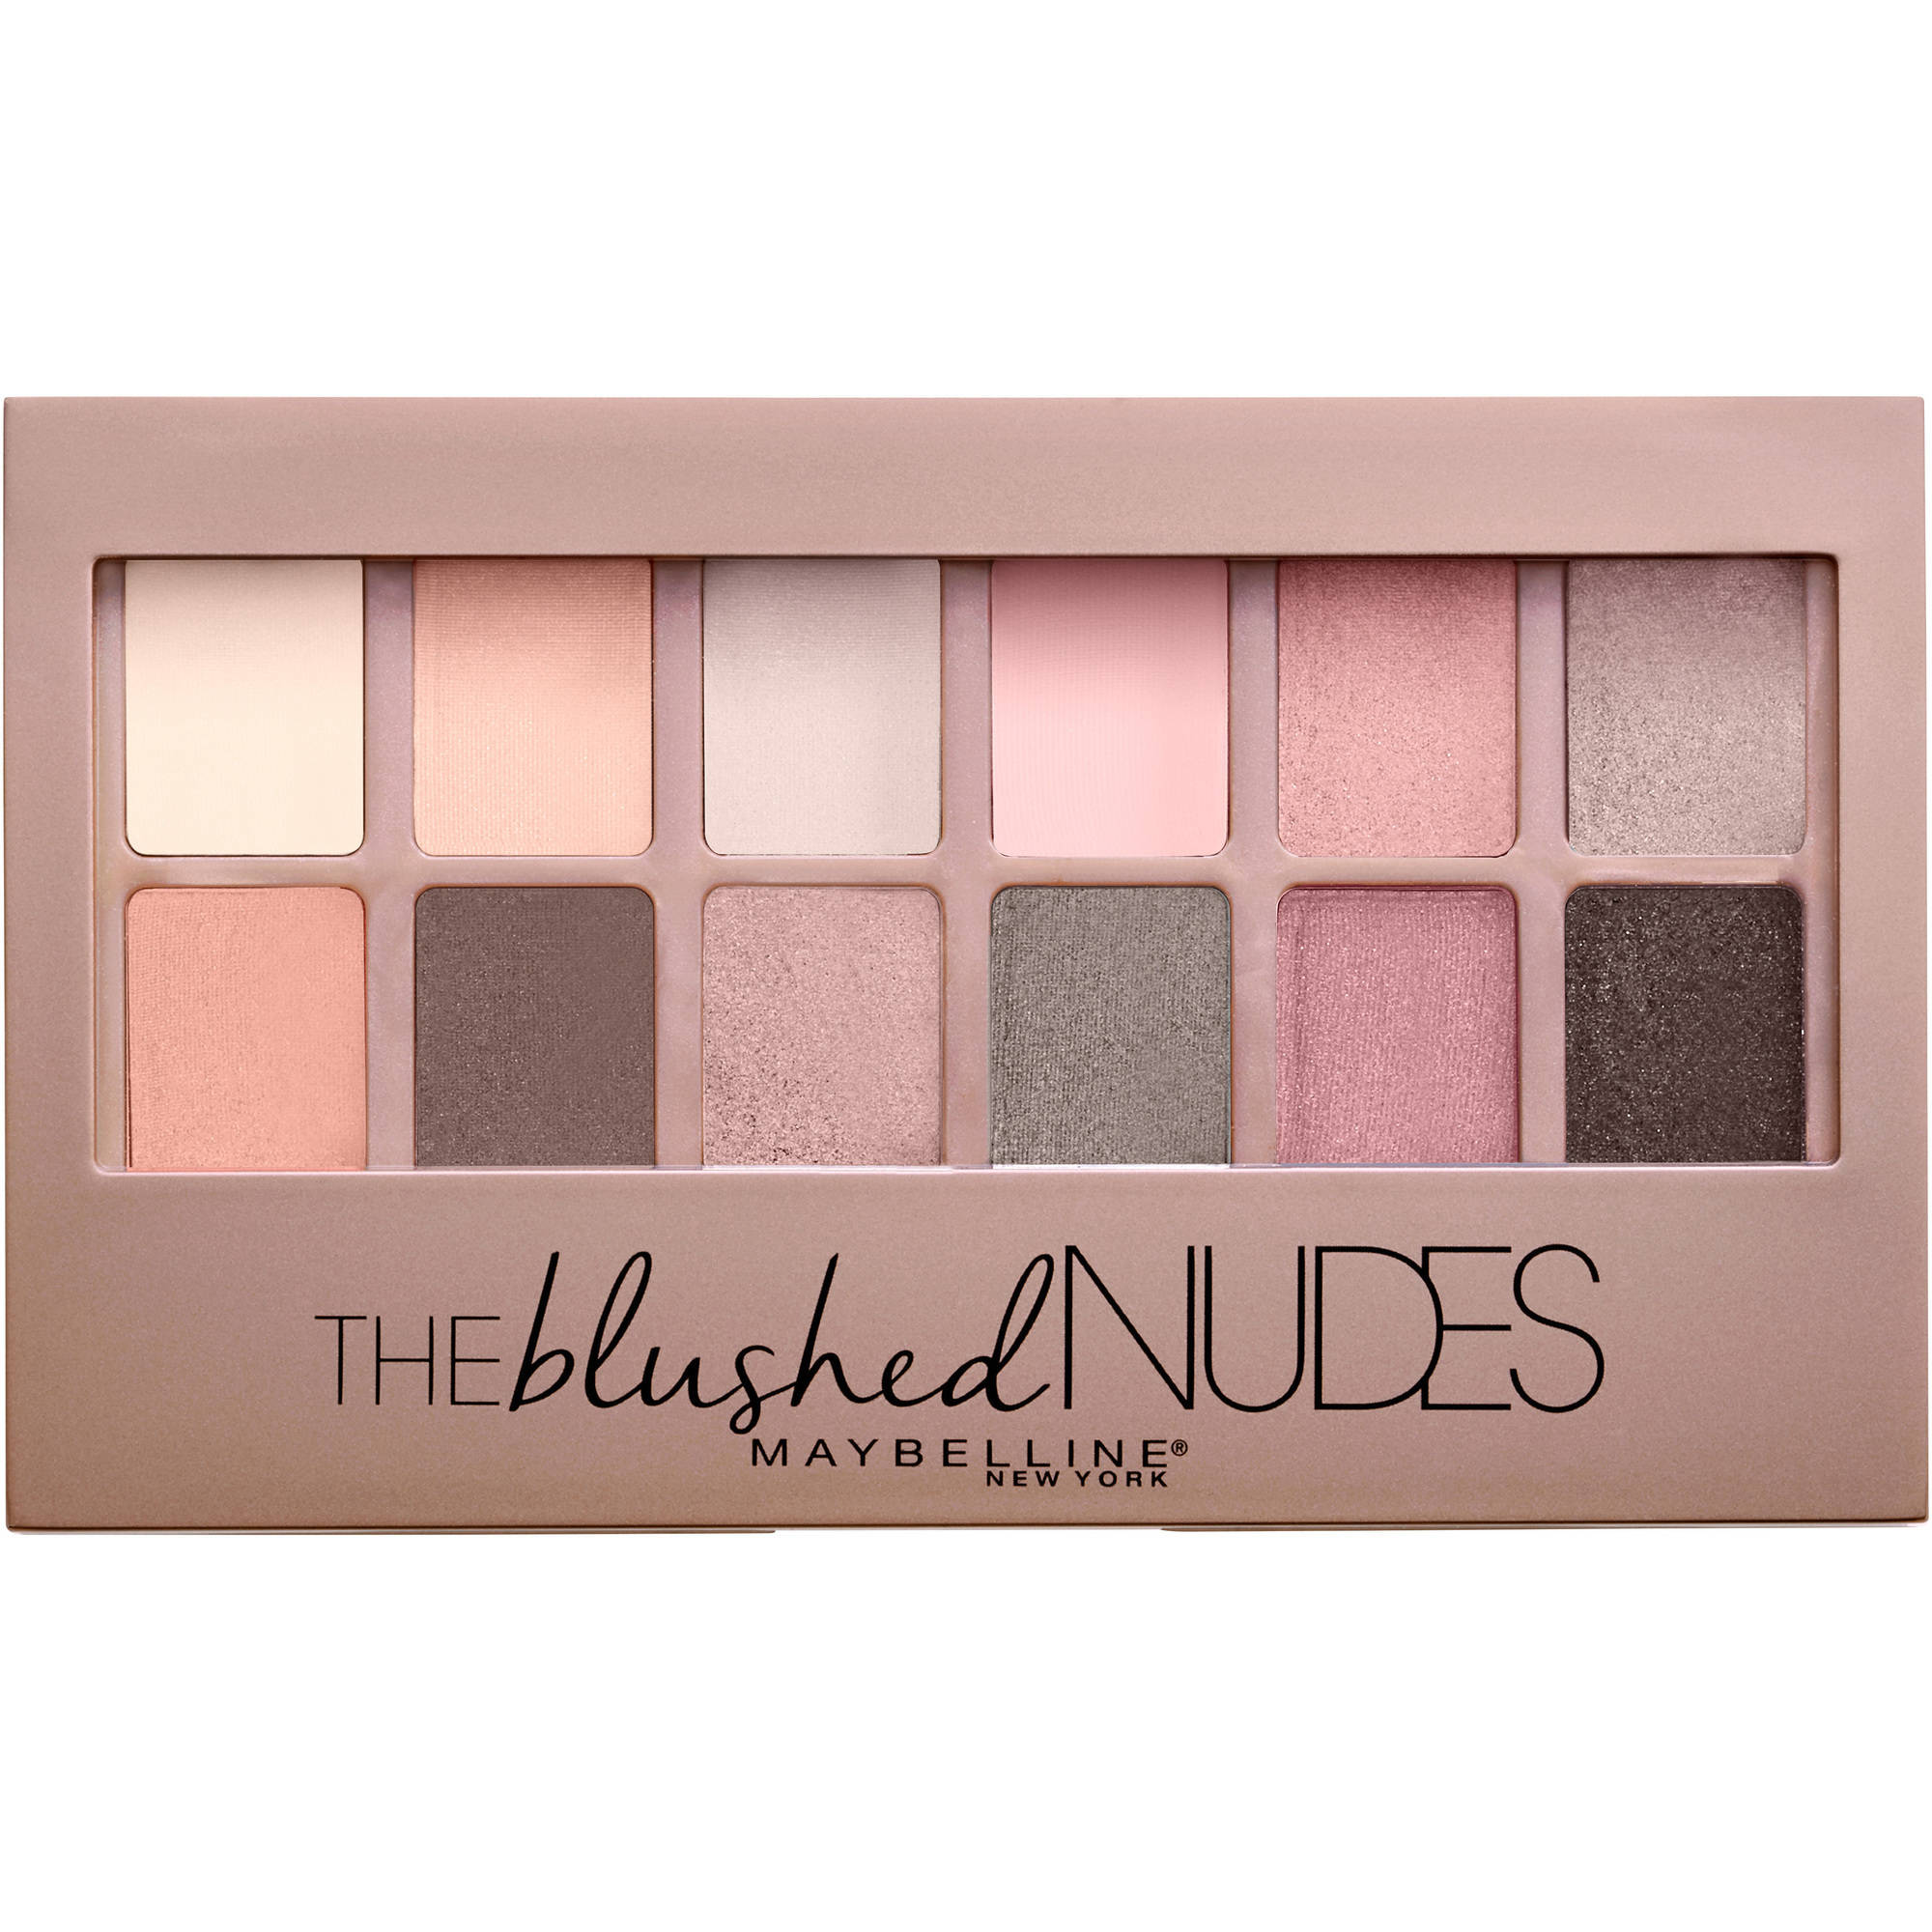 Maybelline New York Expert Wear Shadow Palette, The Blushed Nudes, 0.34 oz